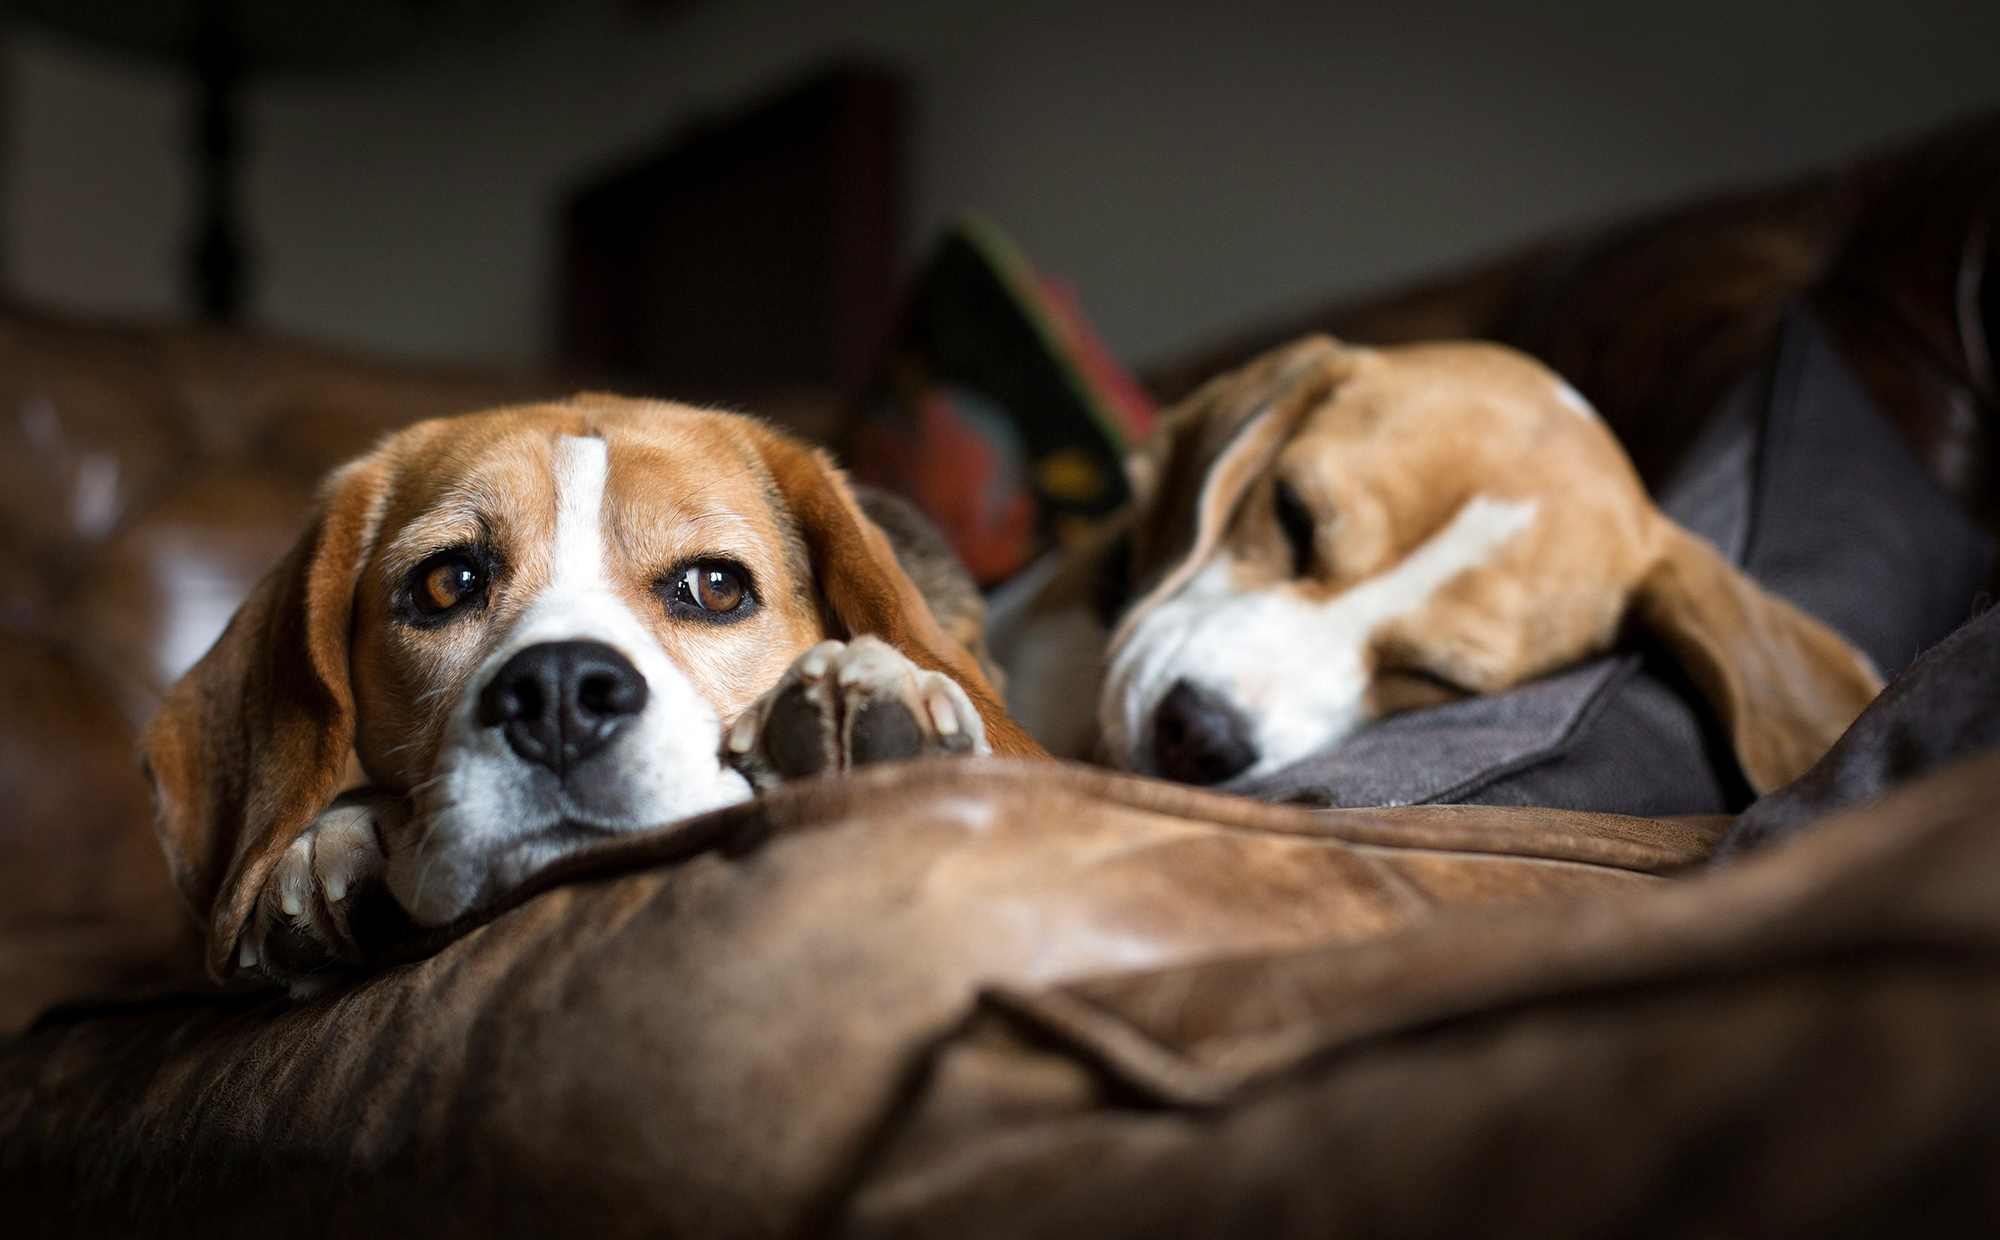 Beagle dog resting on a brown couch wallpapers and images   wallpapers 2000x1240